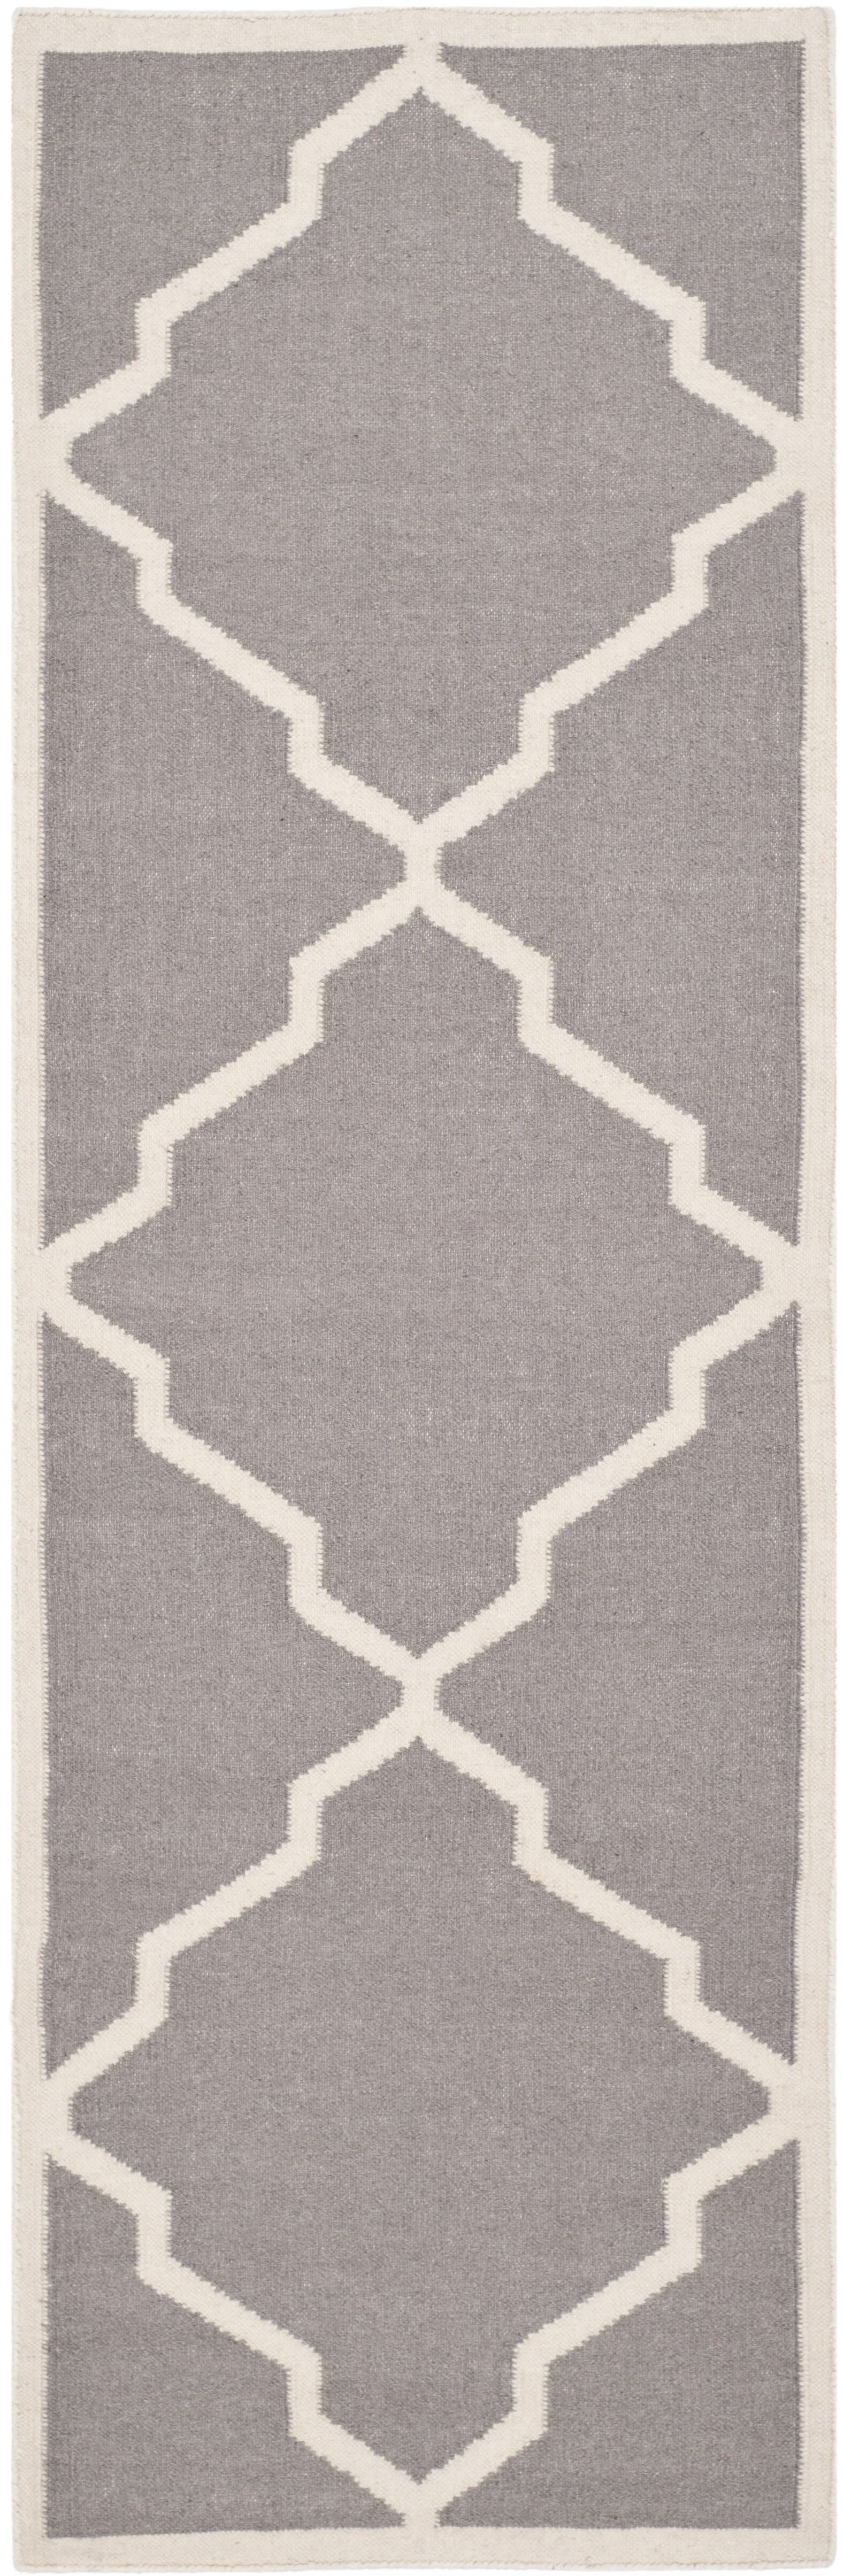 Brambach Hand-Woven Wool Grey/Ivory Area Rug Rug Size: Runner 2'3